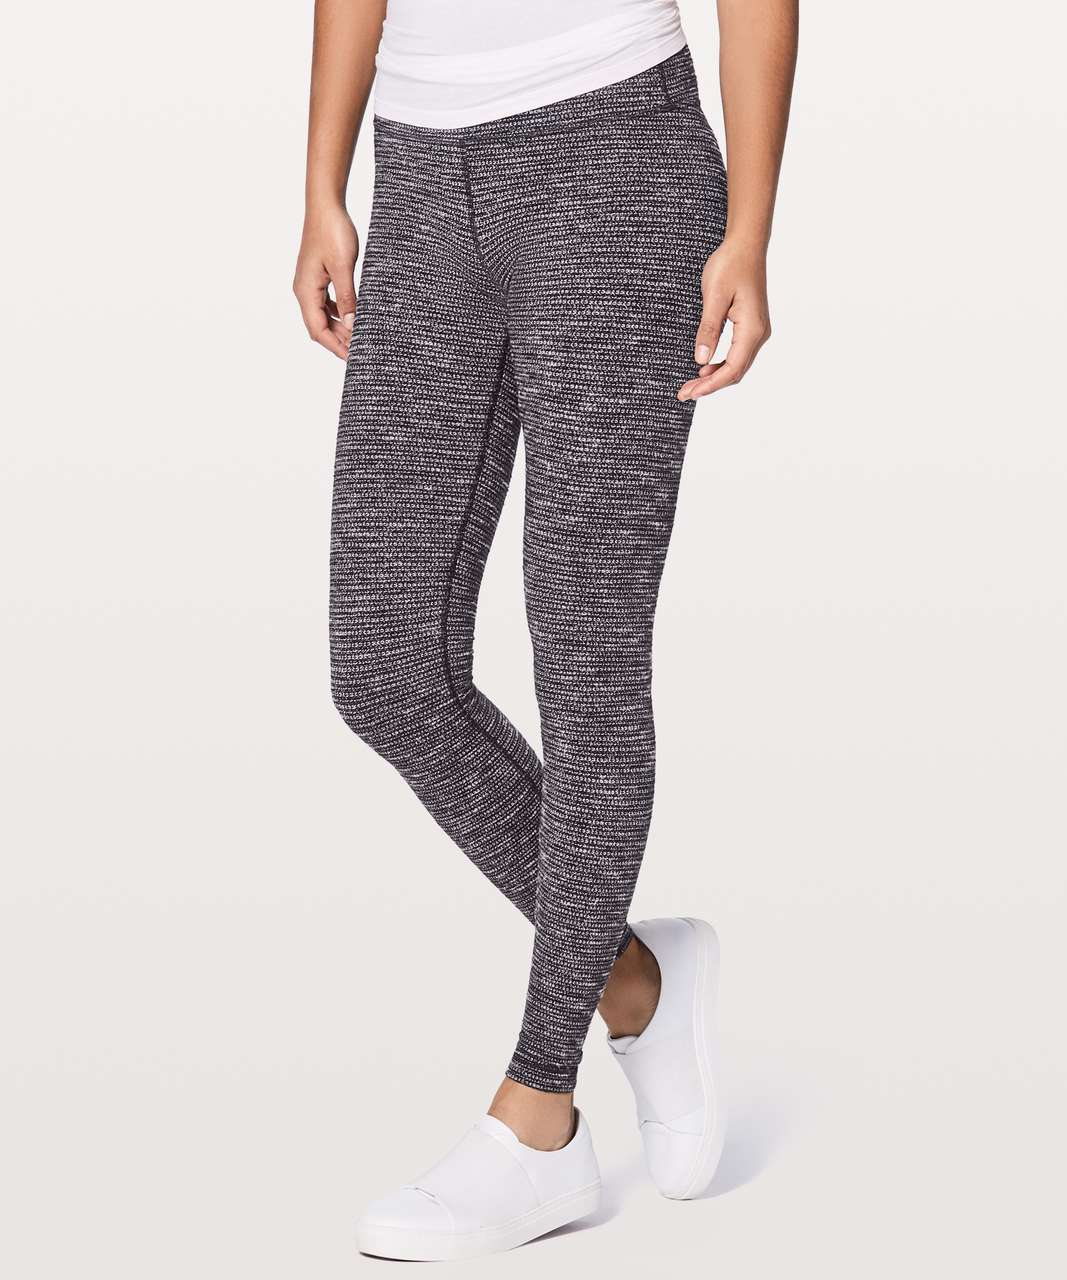 "Lululemon Wunder Under Hi-Rise Tight *28"" - Coco Pique Black White"